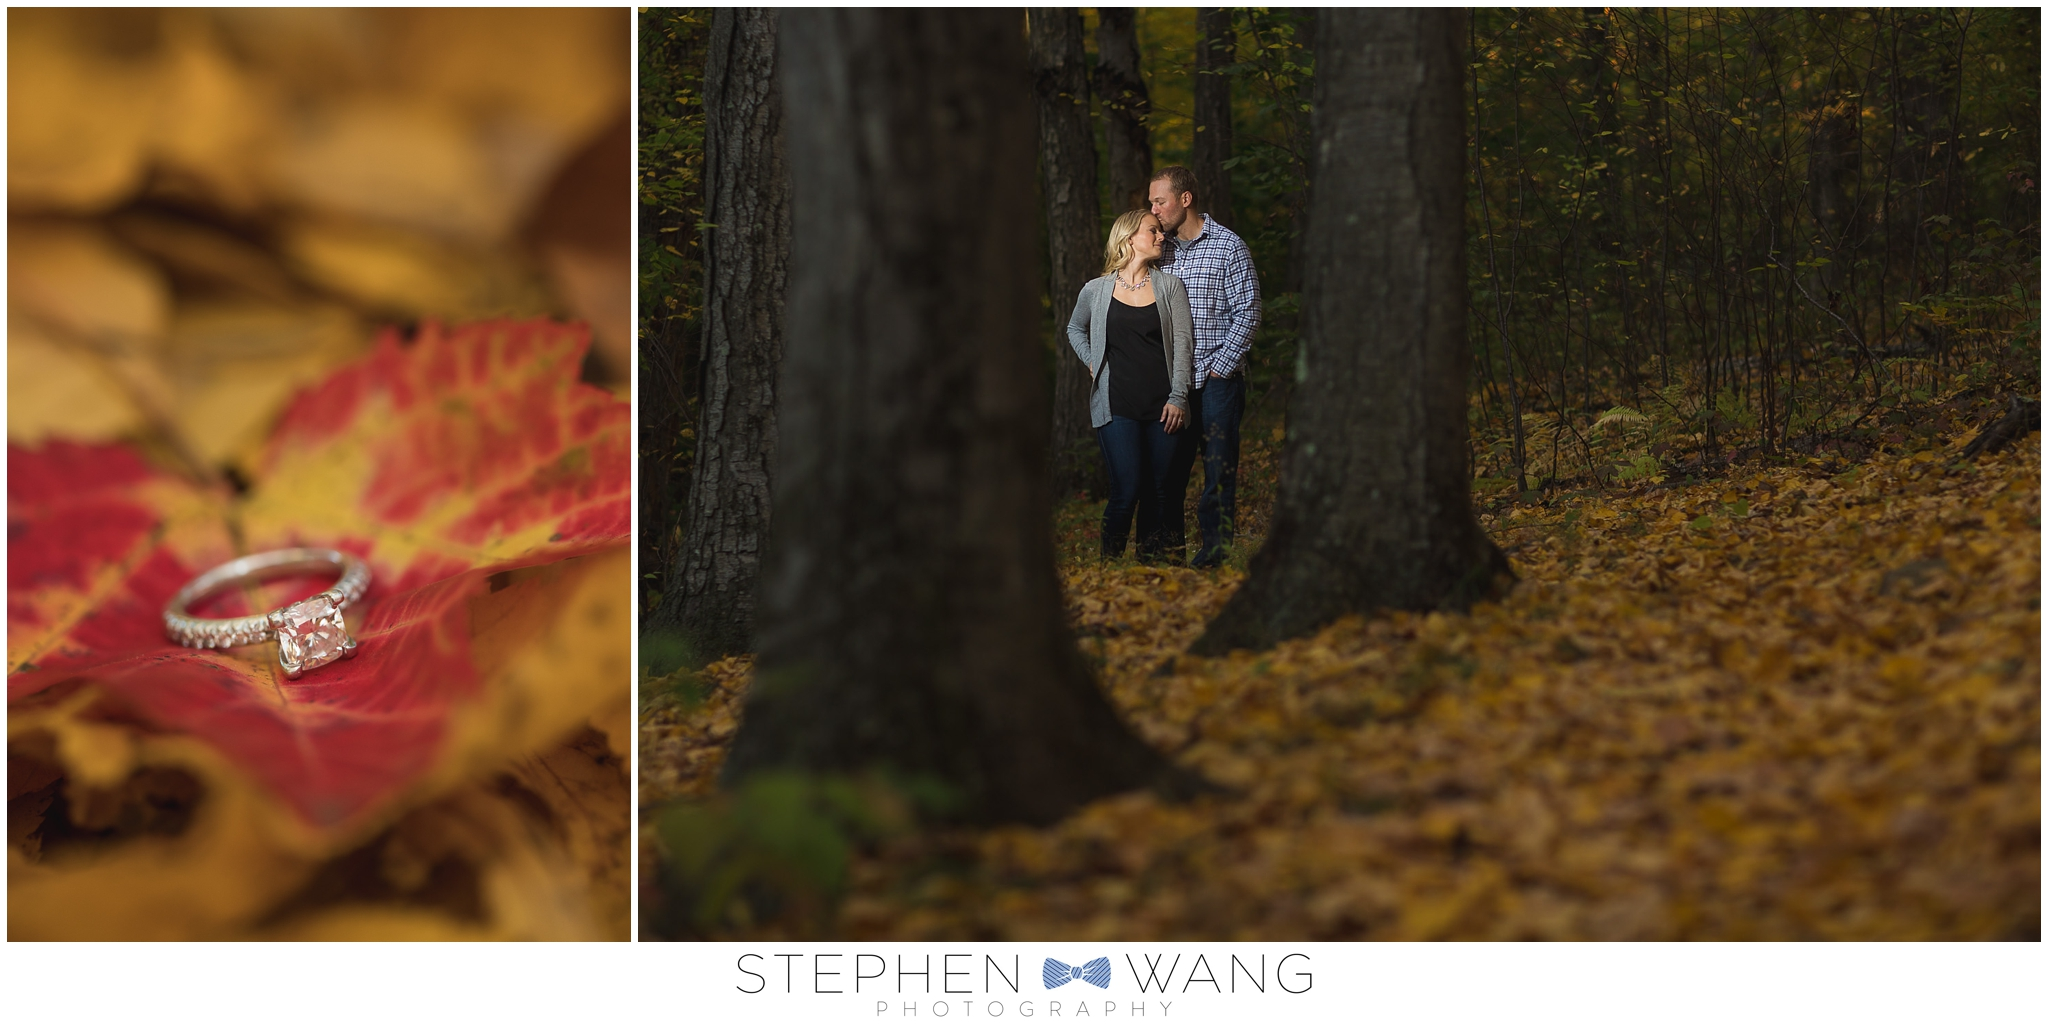 Stephen Wang Photography Connecticut Engagement Session photographer Wadsworth Mansion Park Middletown Autum Fall Foliage CT New Haven-10-23_0002.jpg